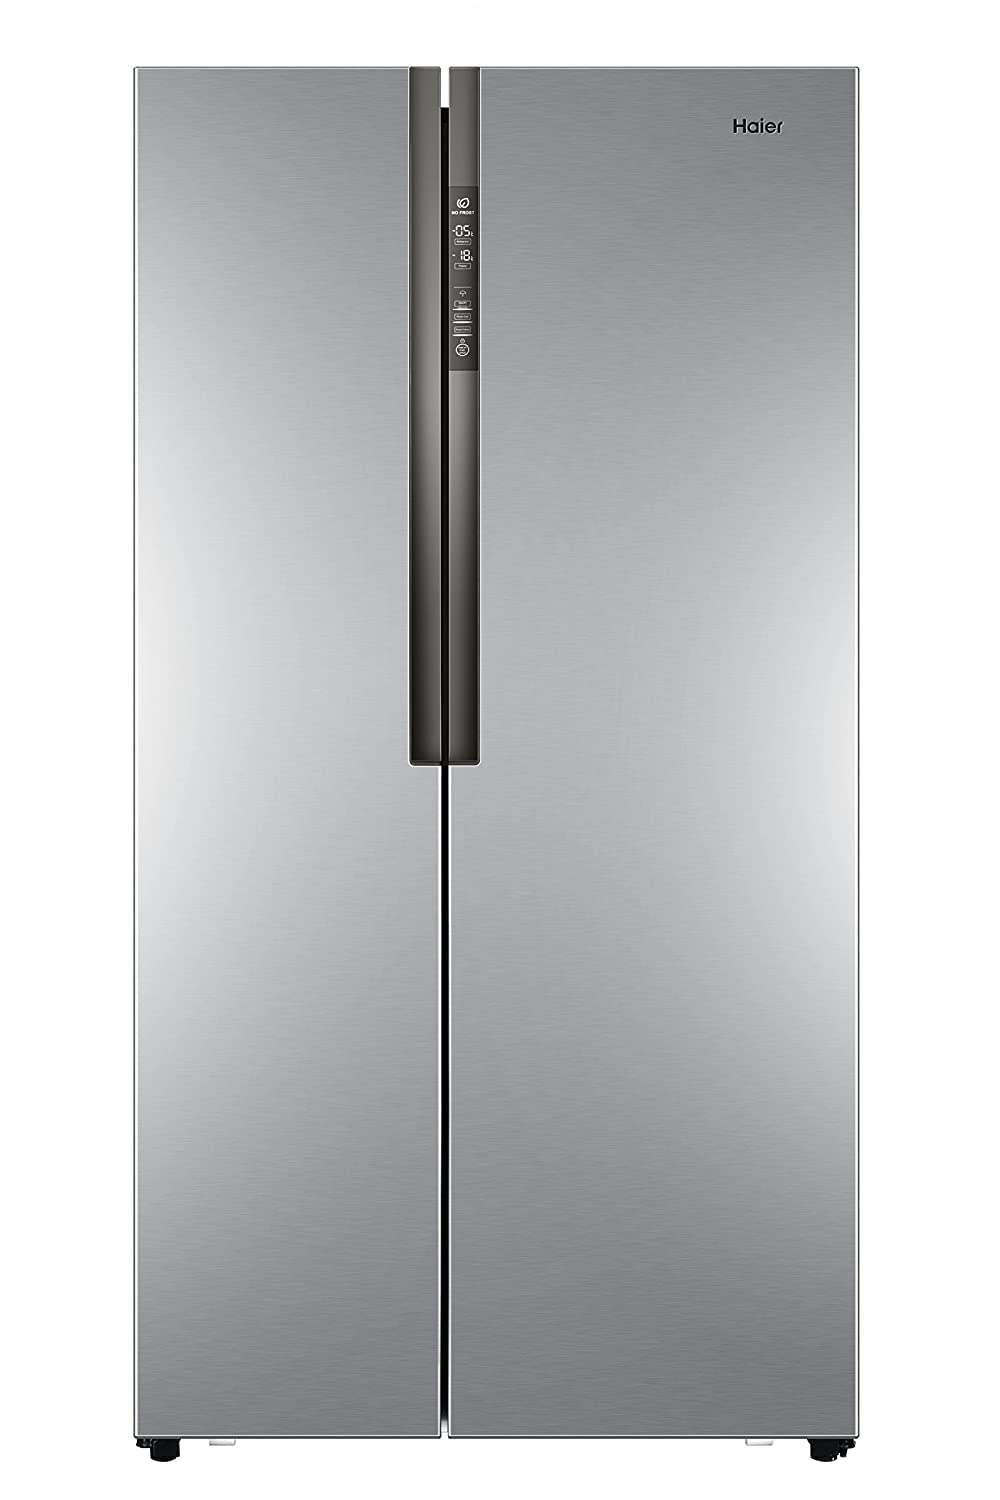 Haier HRF-521DS6 Independiente 518L A+ Plata nevera puerta lado a lado - Frigorífico side-by-side (Independiente, Plata, Puerta americana, LED, Tocar, ...